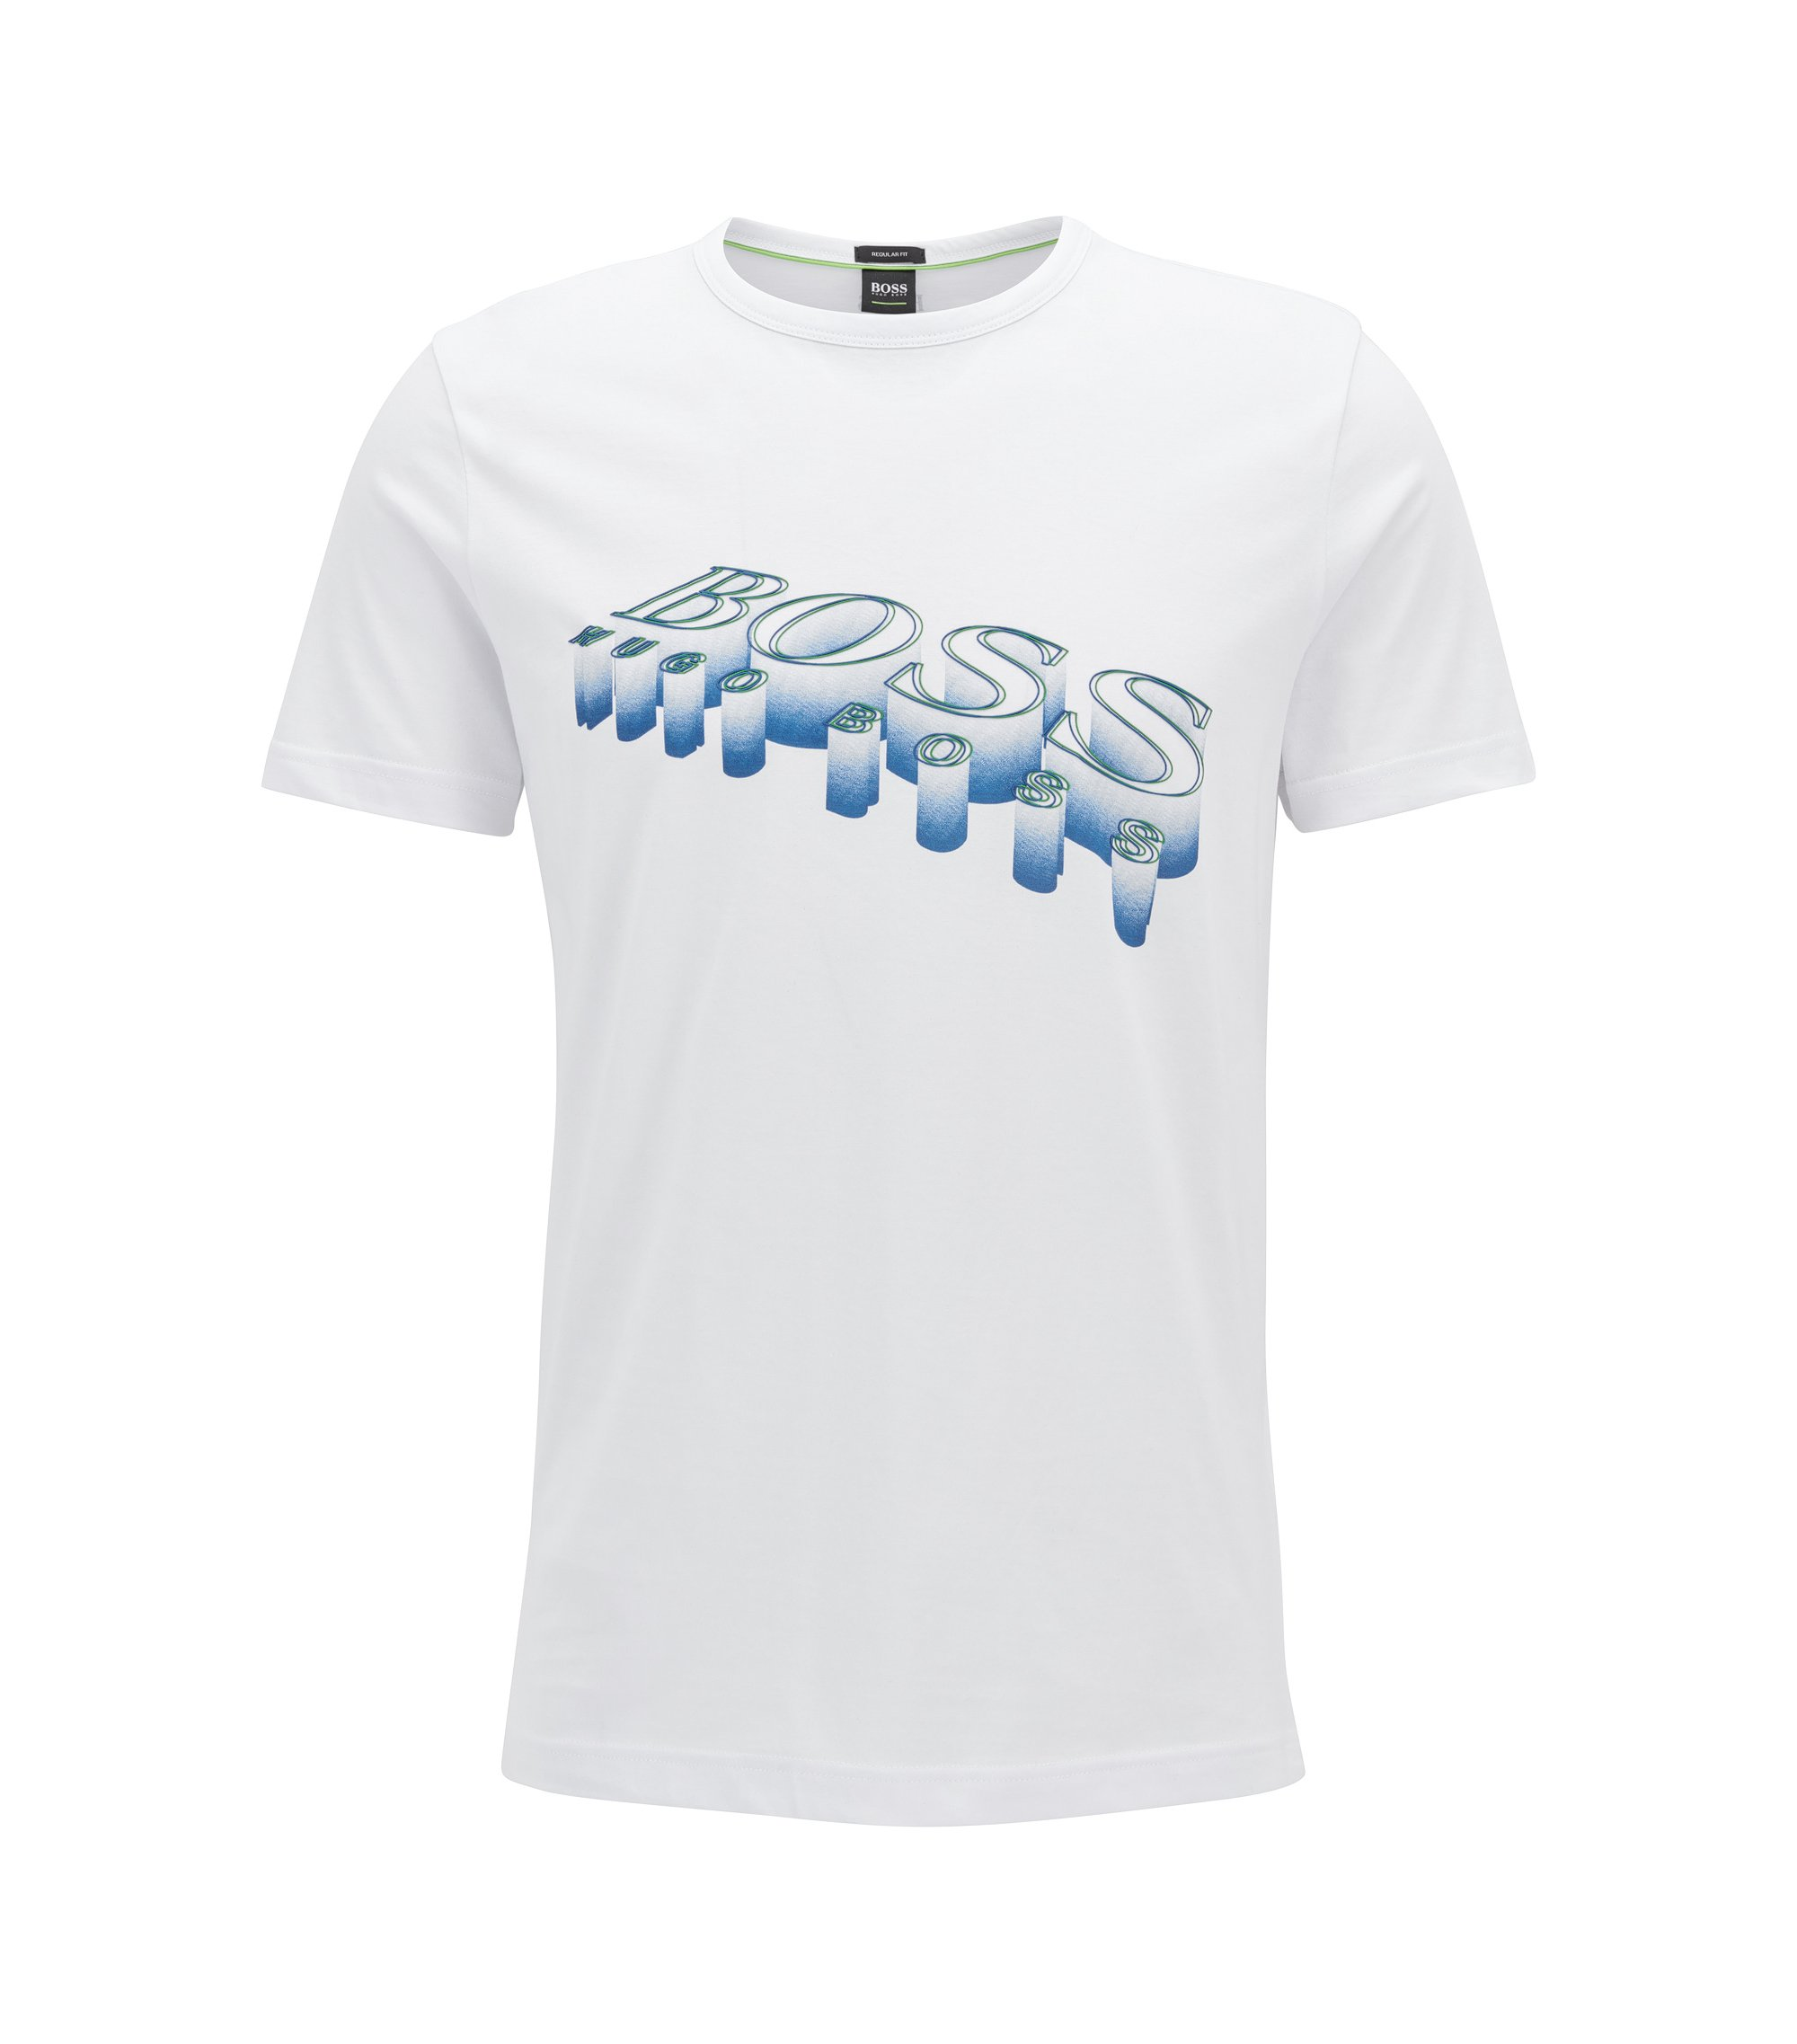 3D-logo T-shirt in soft cotton, White